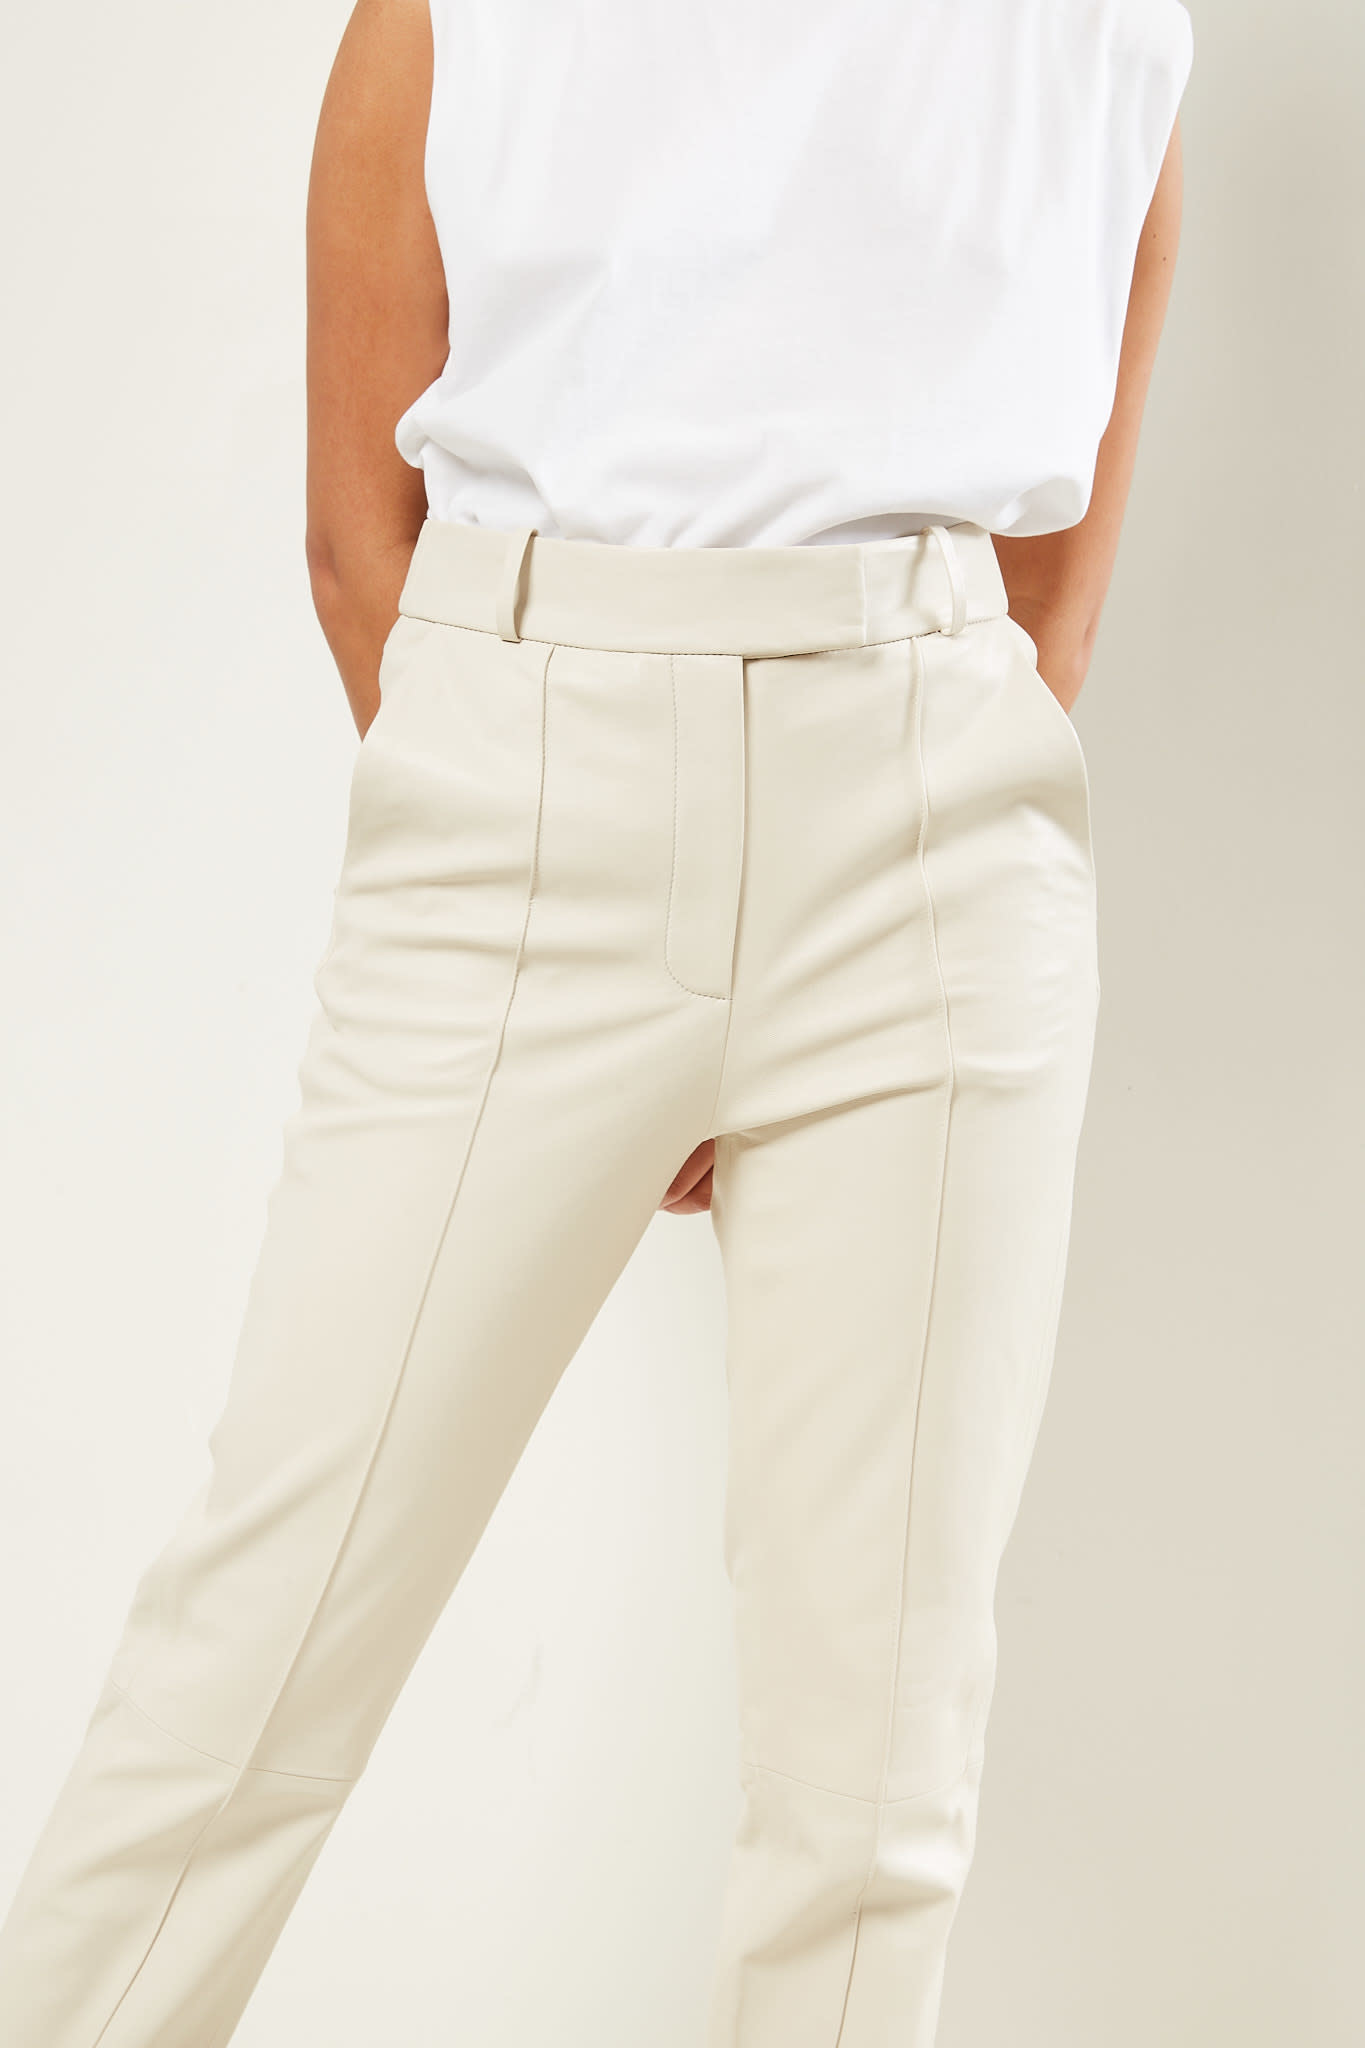 Frenken - Cast trousers